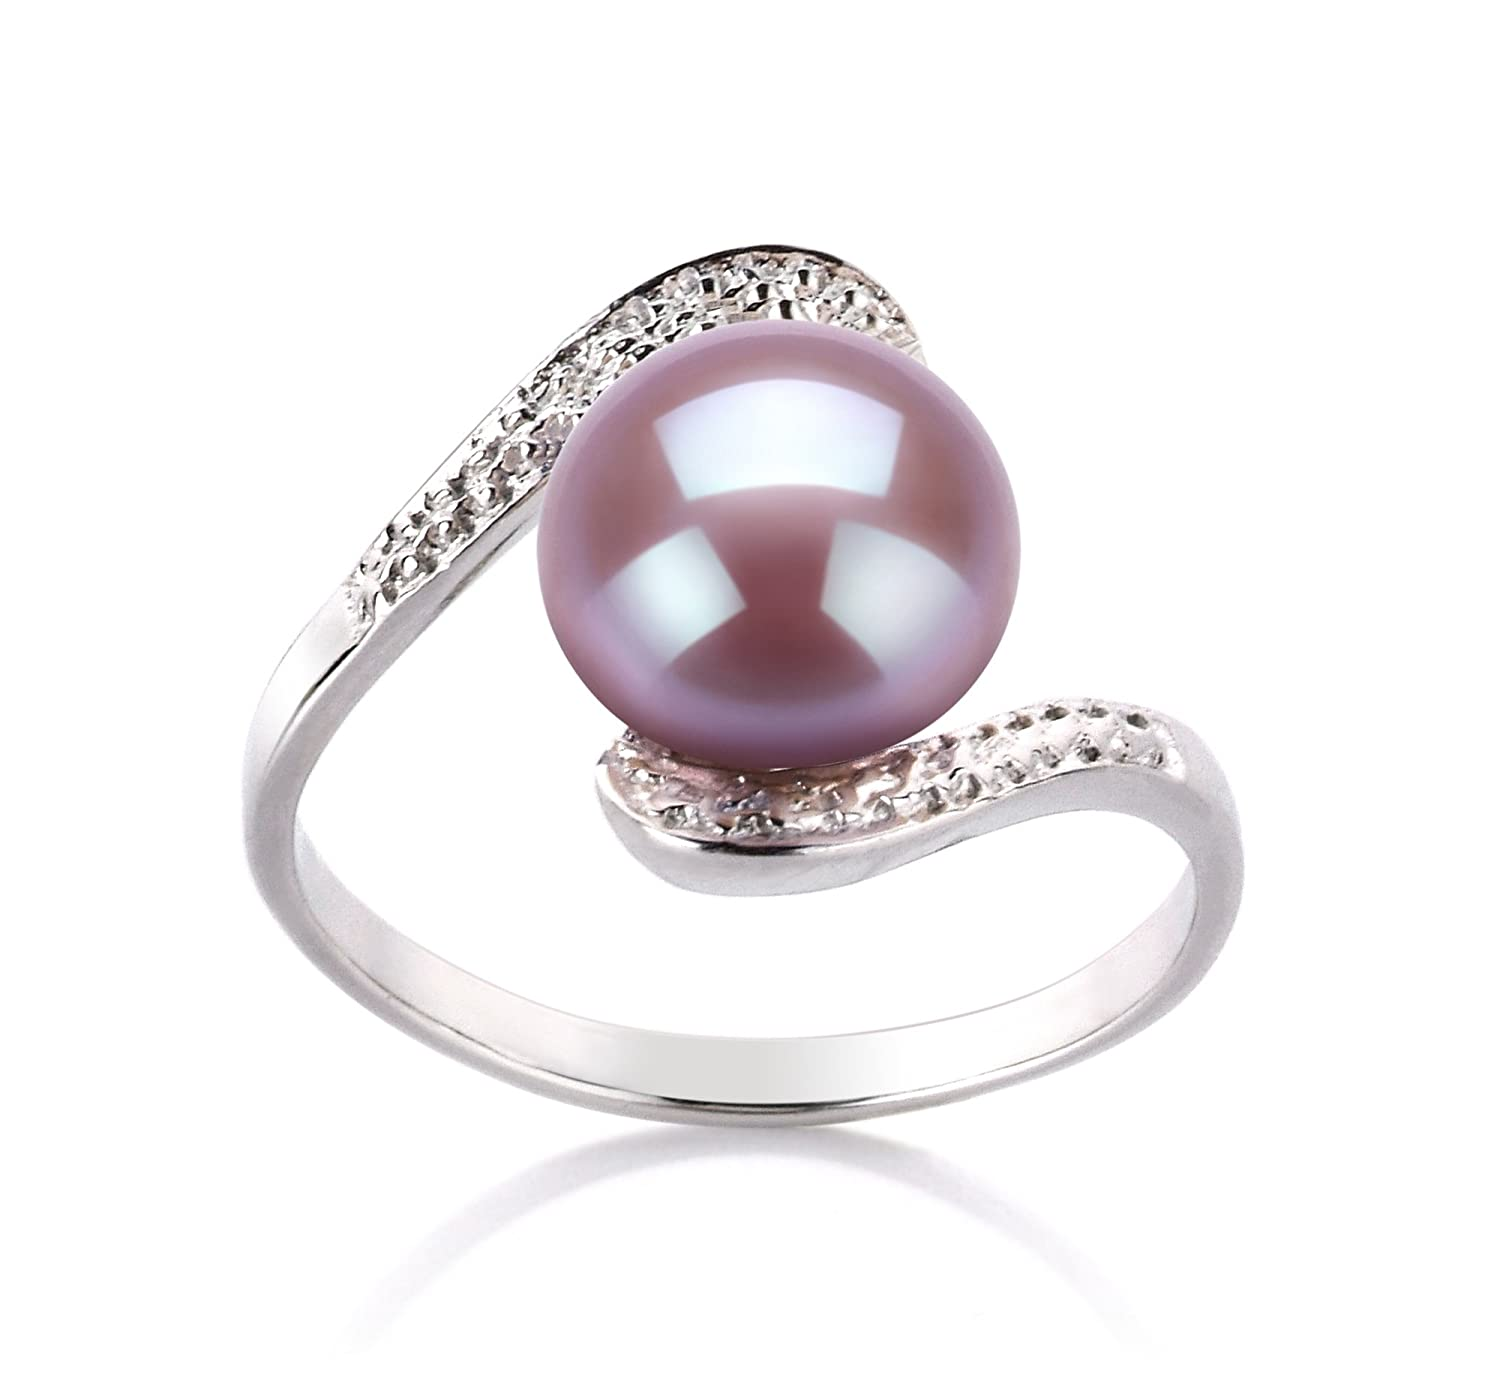 Lavender 9-10mm AA Quality Freshwater 925 Sterling Silver Cultured Pearl Ring